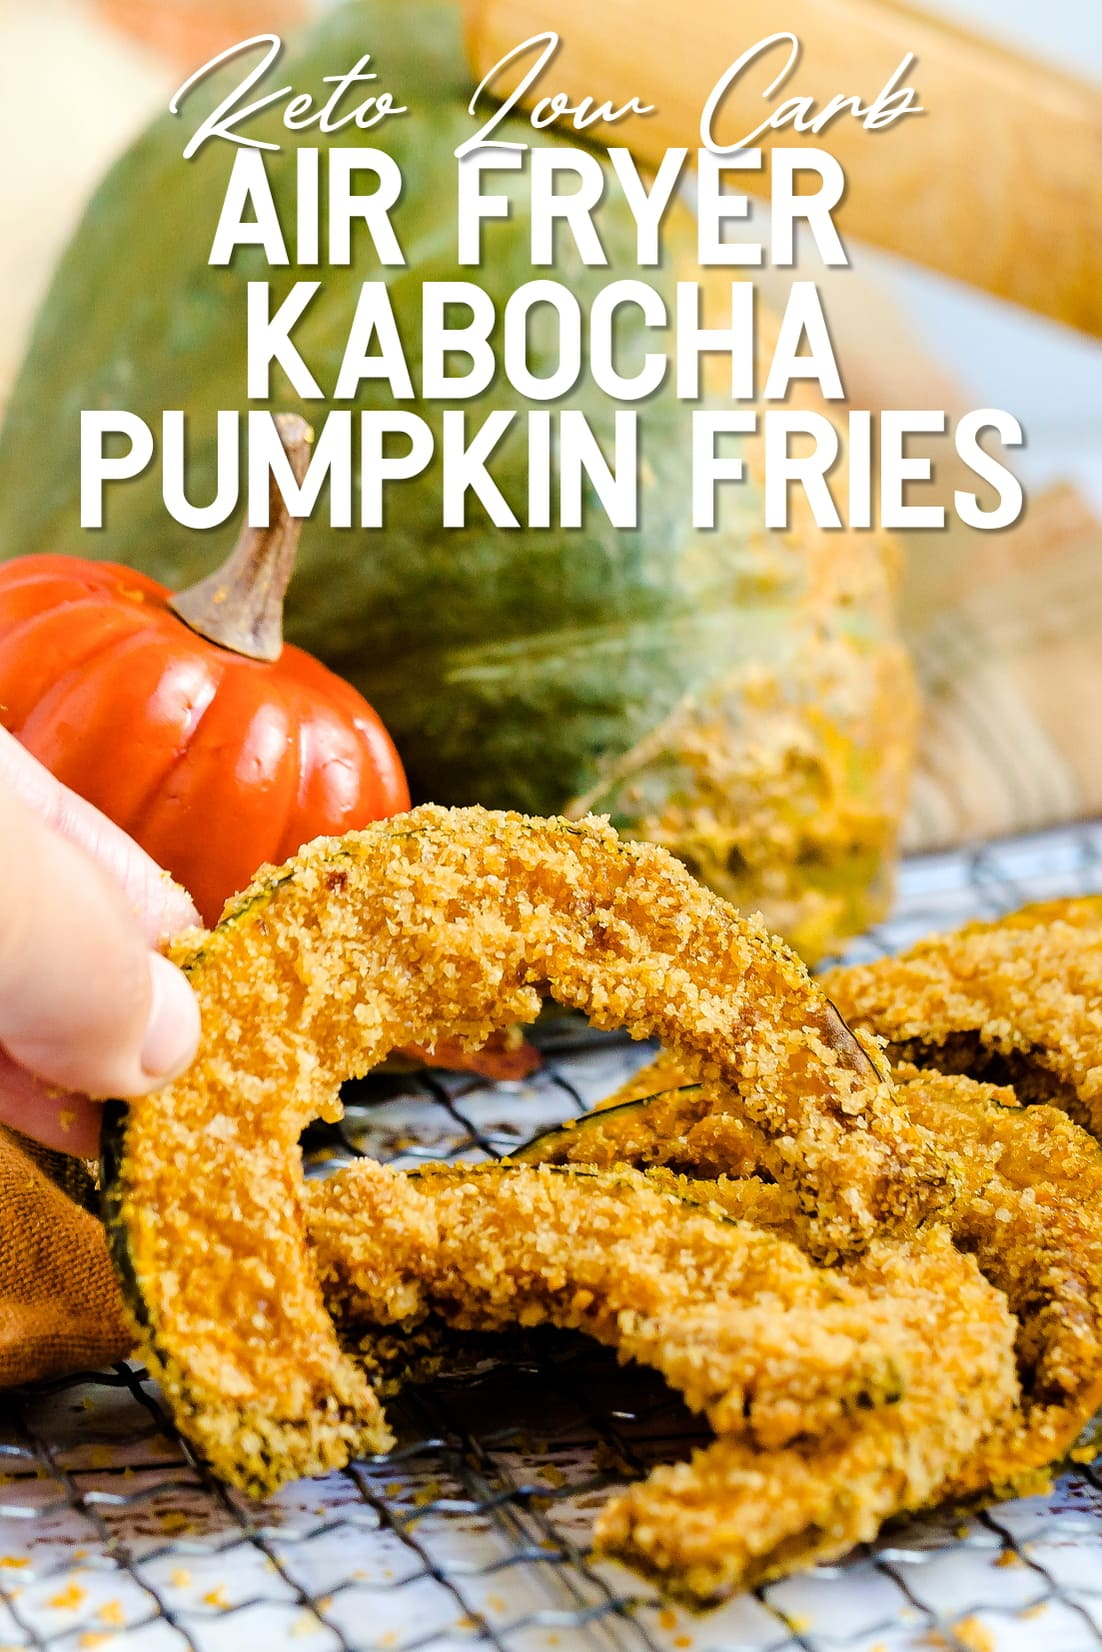 Keto Air Fried Kabocha Pumpkin Fries being picked up with fingers